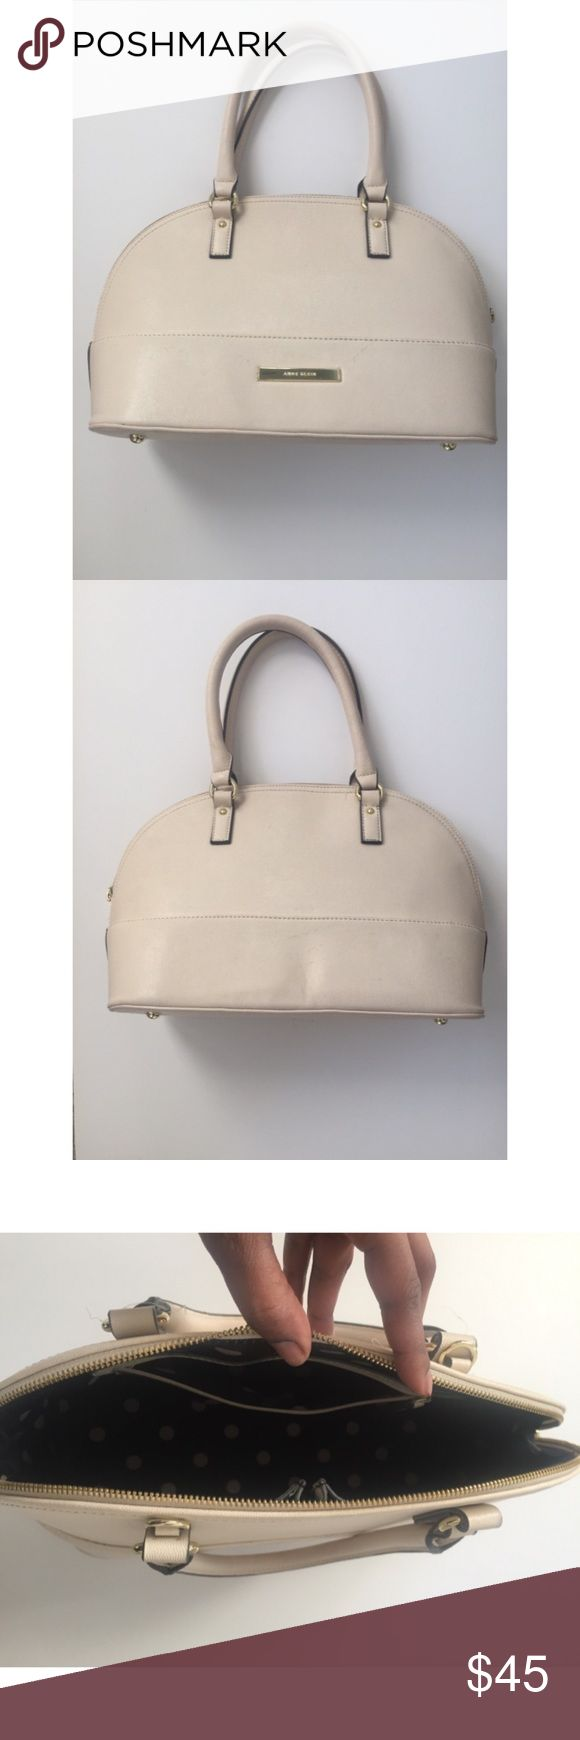 Off-white handbag Cute off-white handbag. Very clean, inside and out! Back has a little indentation in it..but not real noticeable. This purse is very much LIKE NEW😊 Anne Klein Bags Totes